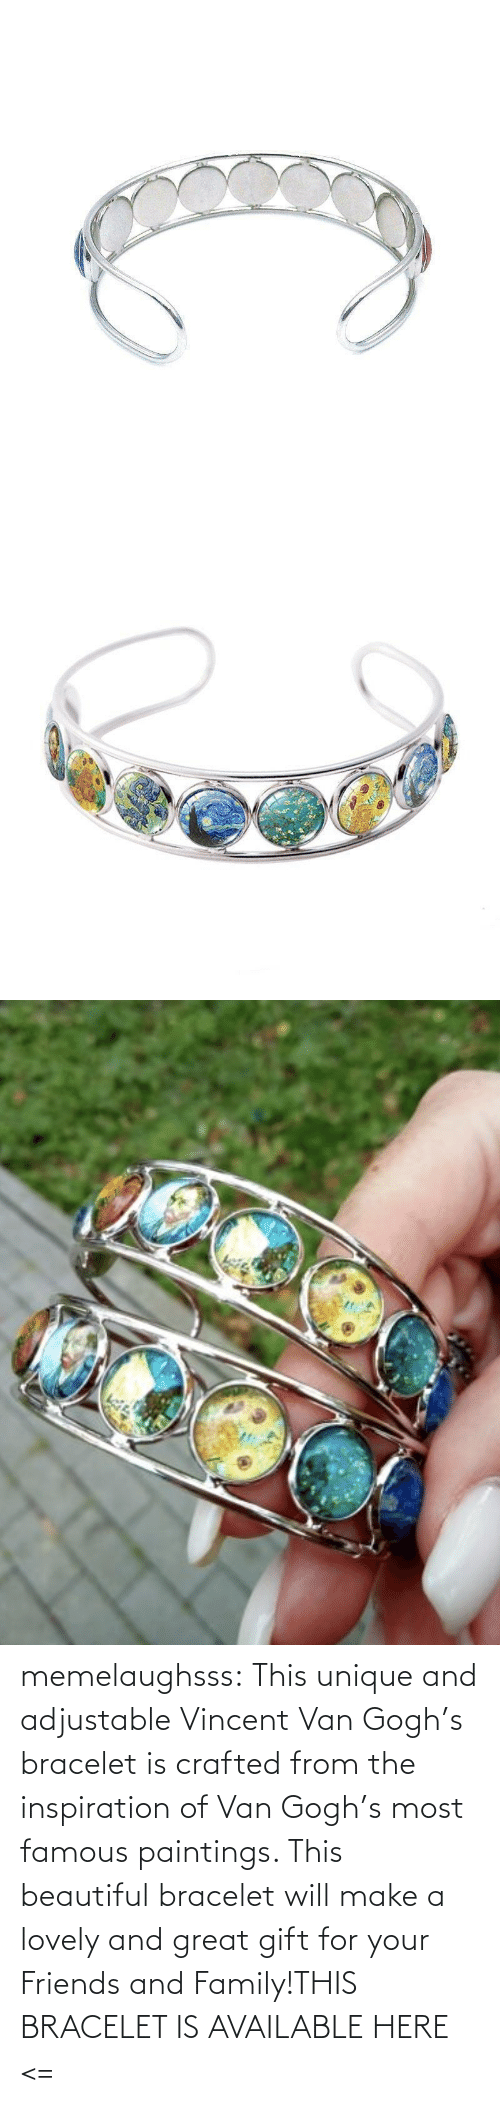 van: memelaughsss:  This unique and adjustable Vincent Van Gogh's bracelet is crafted from the inspiration of Van Gogh's most famous paintings. This beautiful bracelet will make a lovely and great gift for your Friends and Family!THIS BRACELET IS AVAILABLE HERE <=